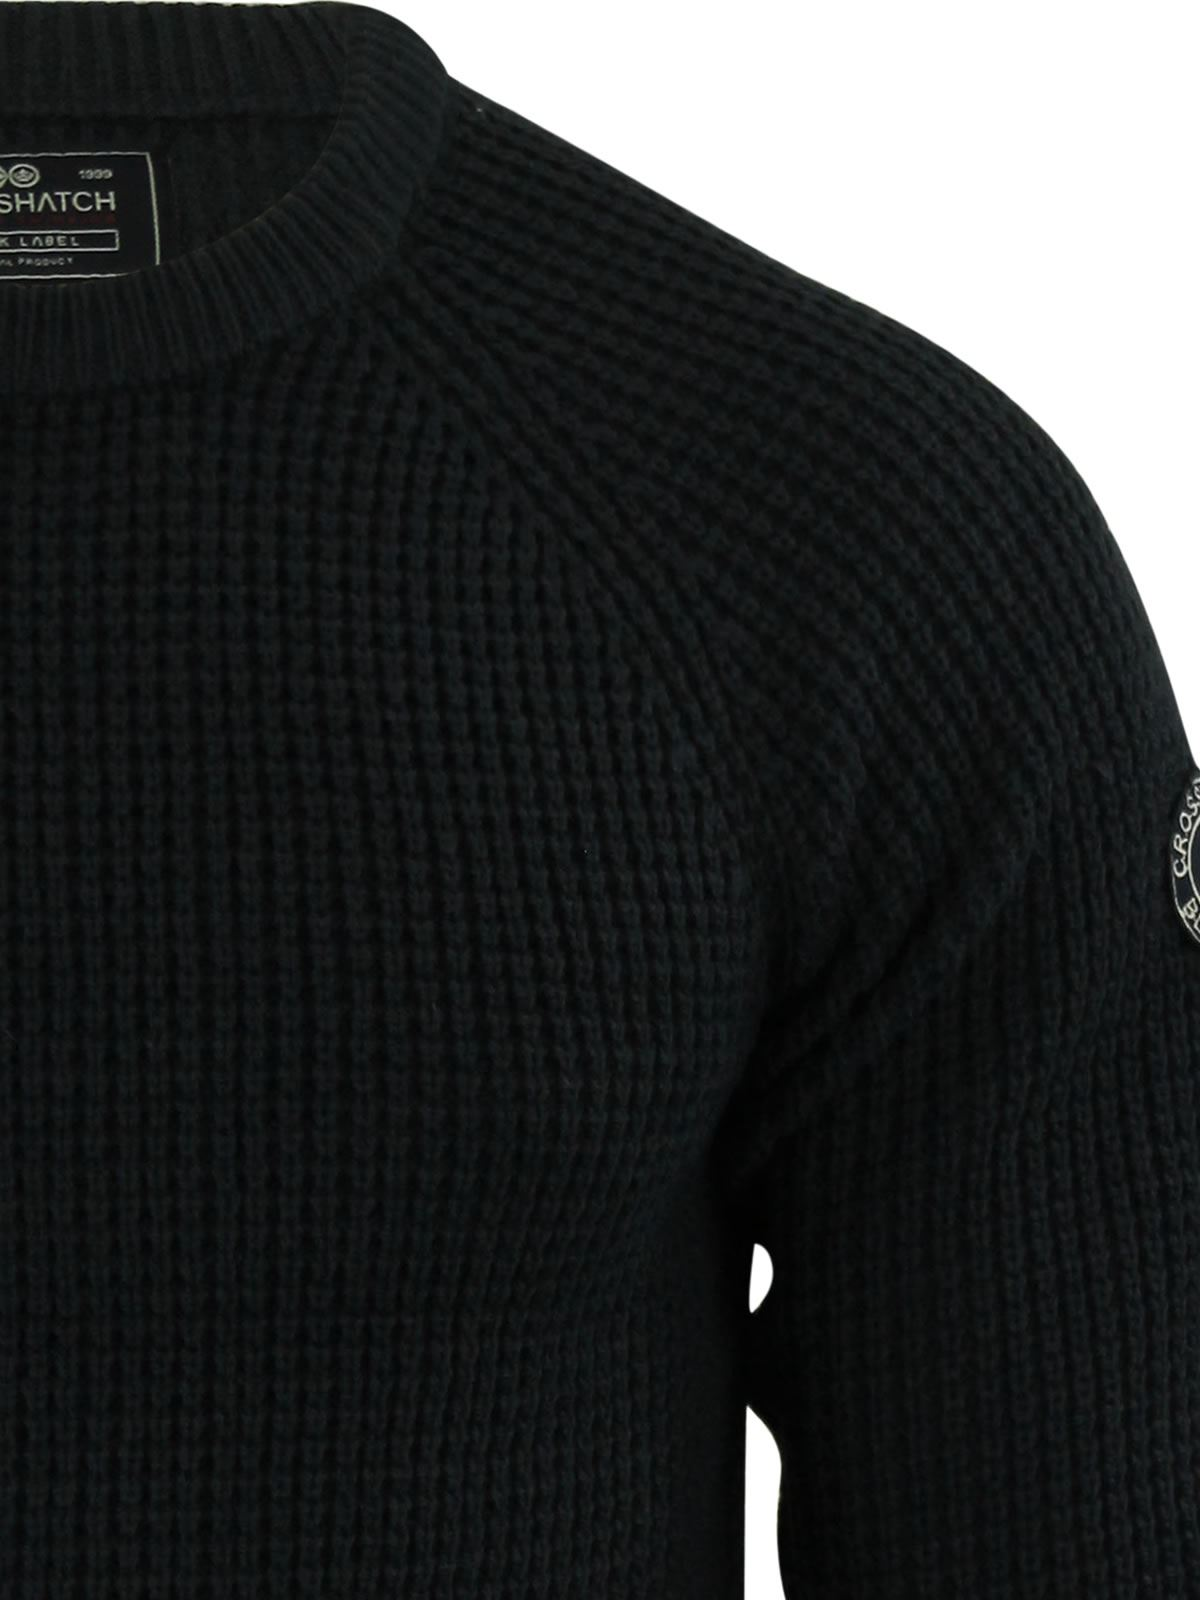 Mens-Jumper-Crosshatch-General-Waffle-Knitted-Crew-Neck-Wool-Mix-Sweater thumbnail 9